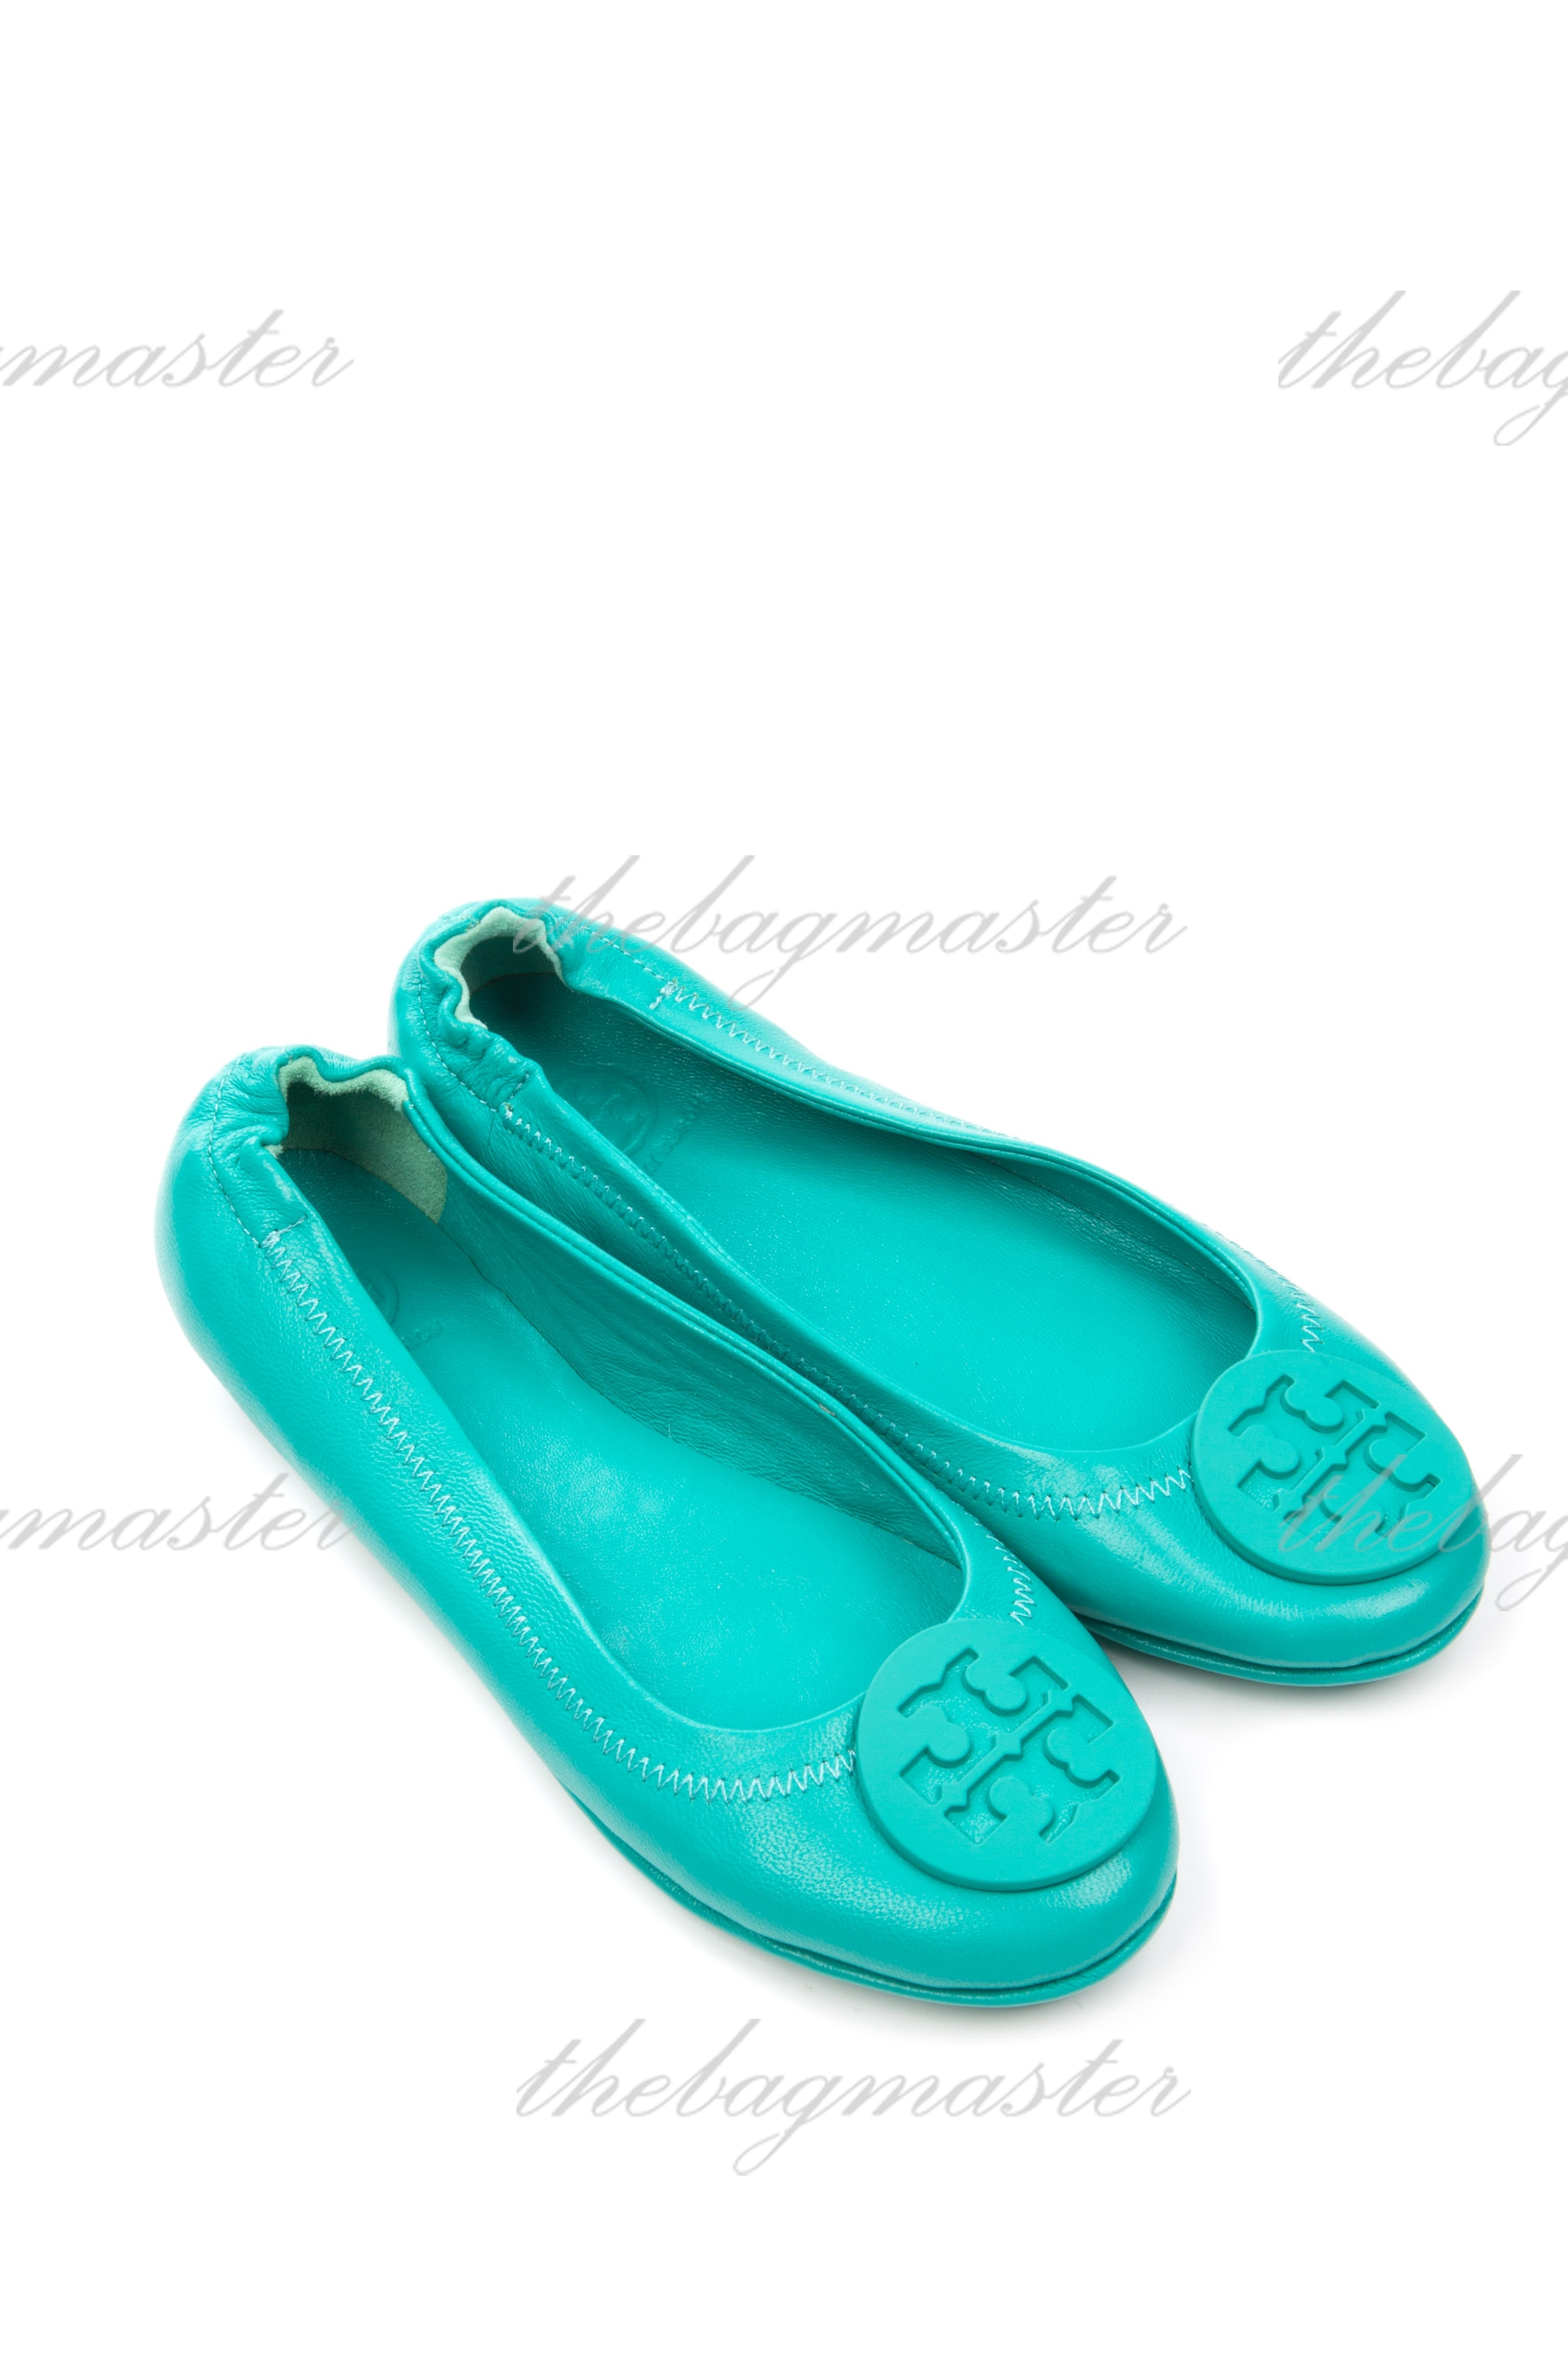 280334d59788 Tory Burch Minnie Travel Logo Ballerina Flat - Mint Green (Size 8.5 ...